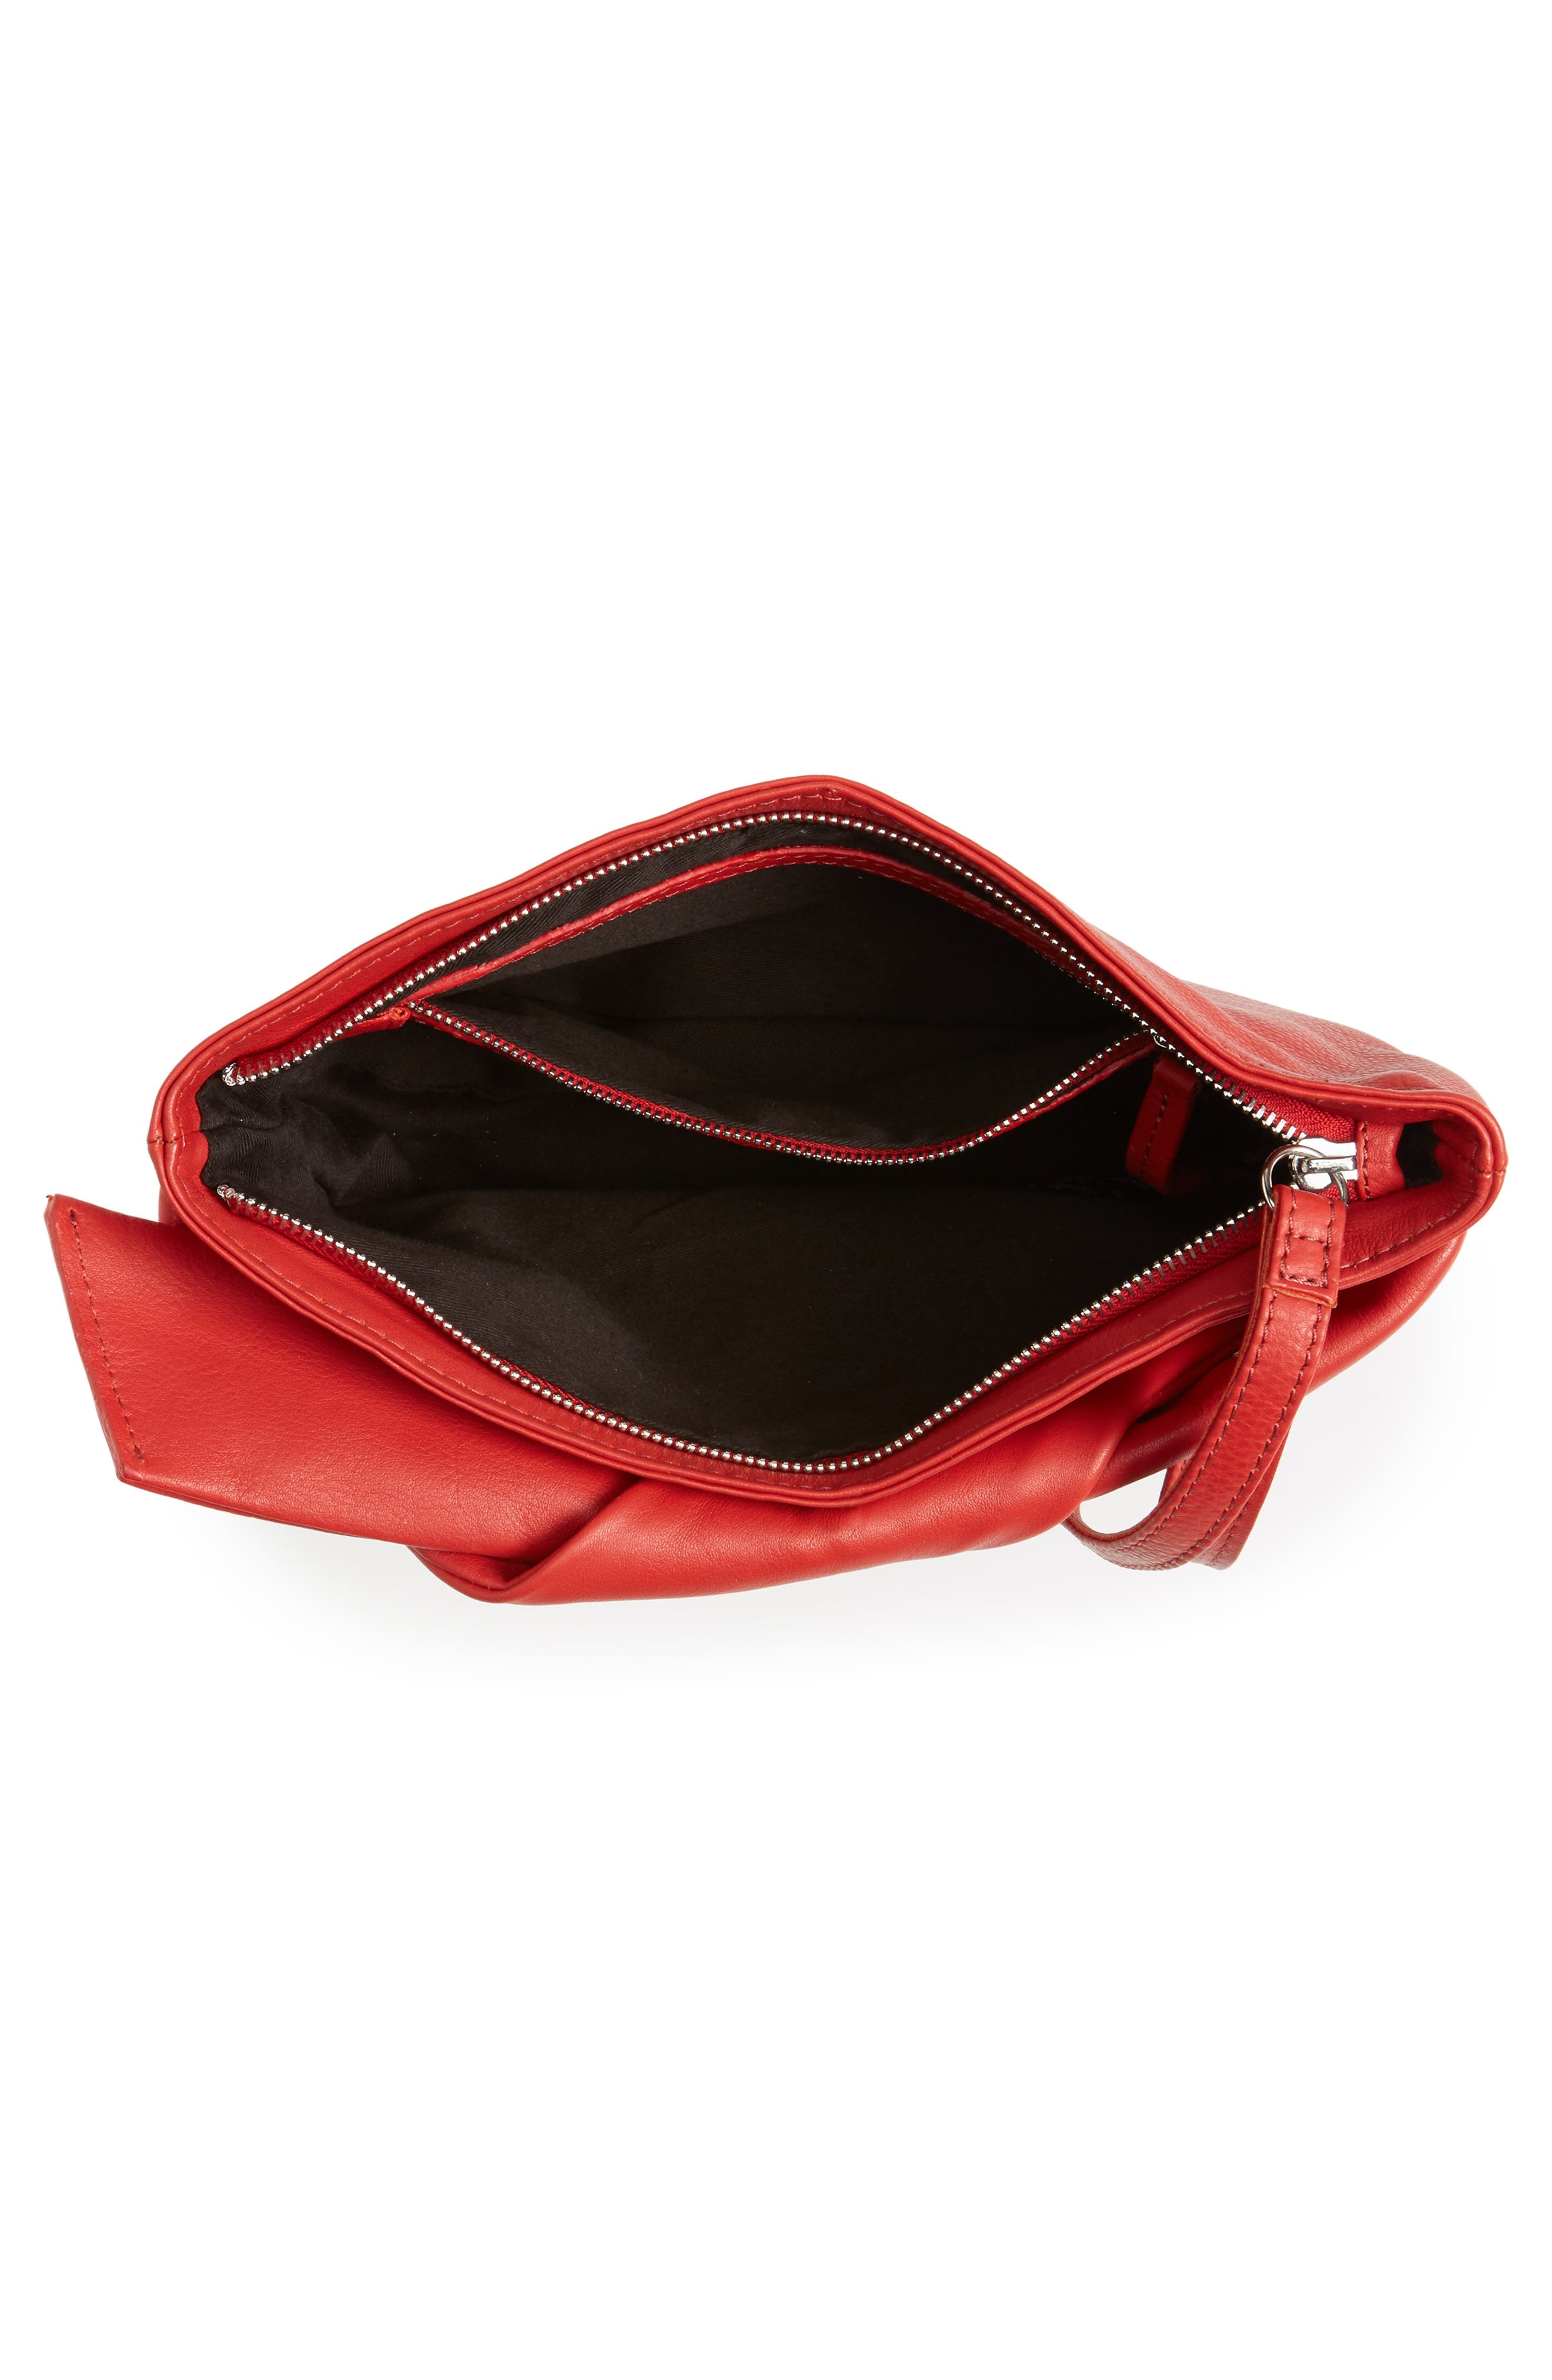 Jasmine Leather Clutch,                             Alternate thumbnail 5, color,                             Red